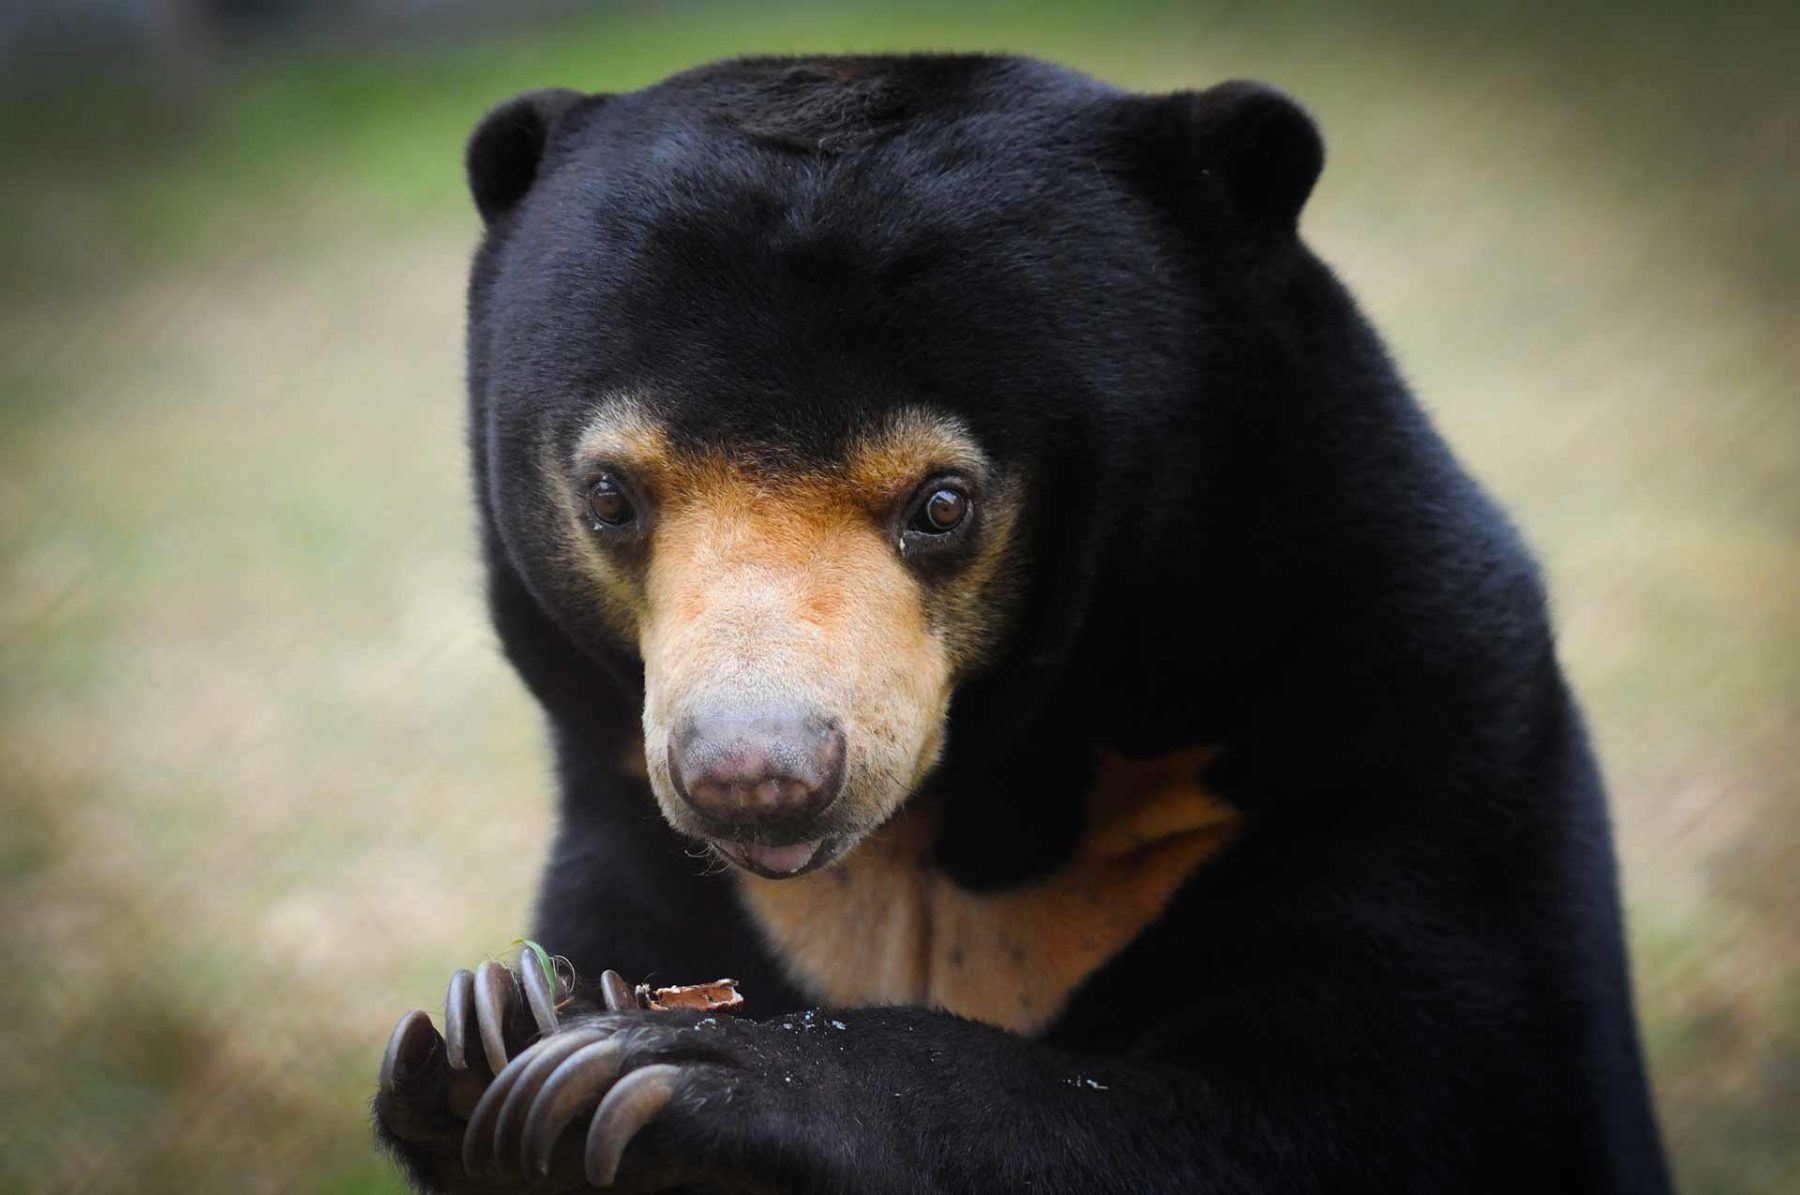 Arkte, a rescued Malayan sun bear, eats a meal off the top of her paw. Animals Asia, Tam Dao sanctuary, Vietnam